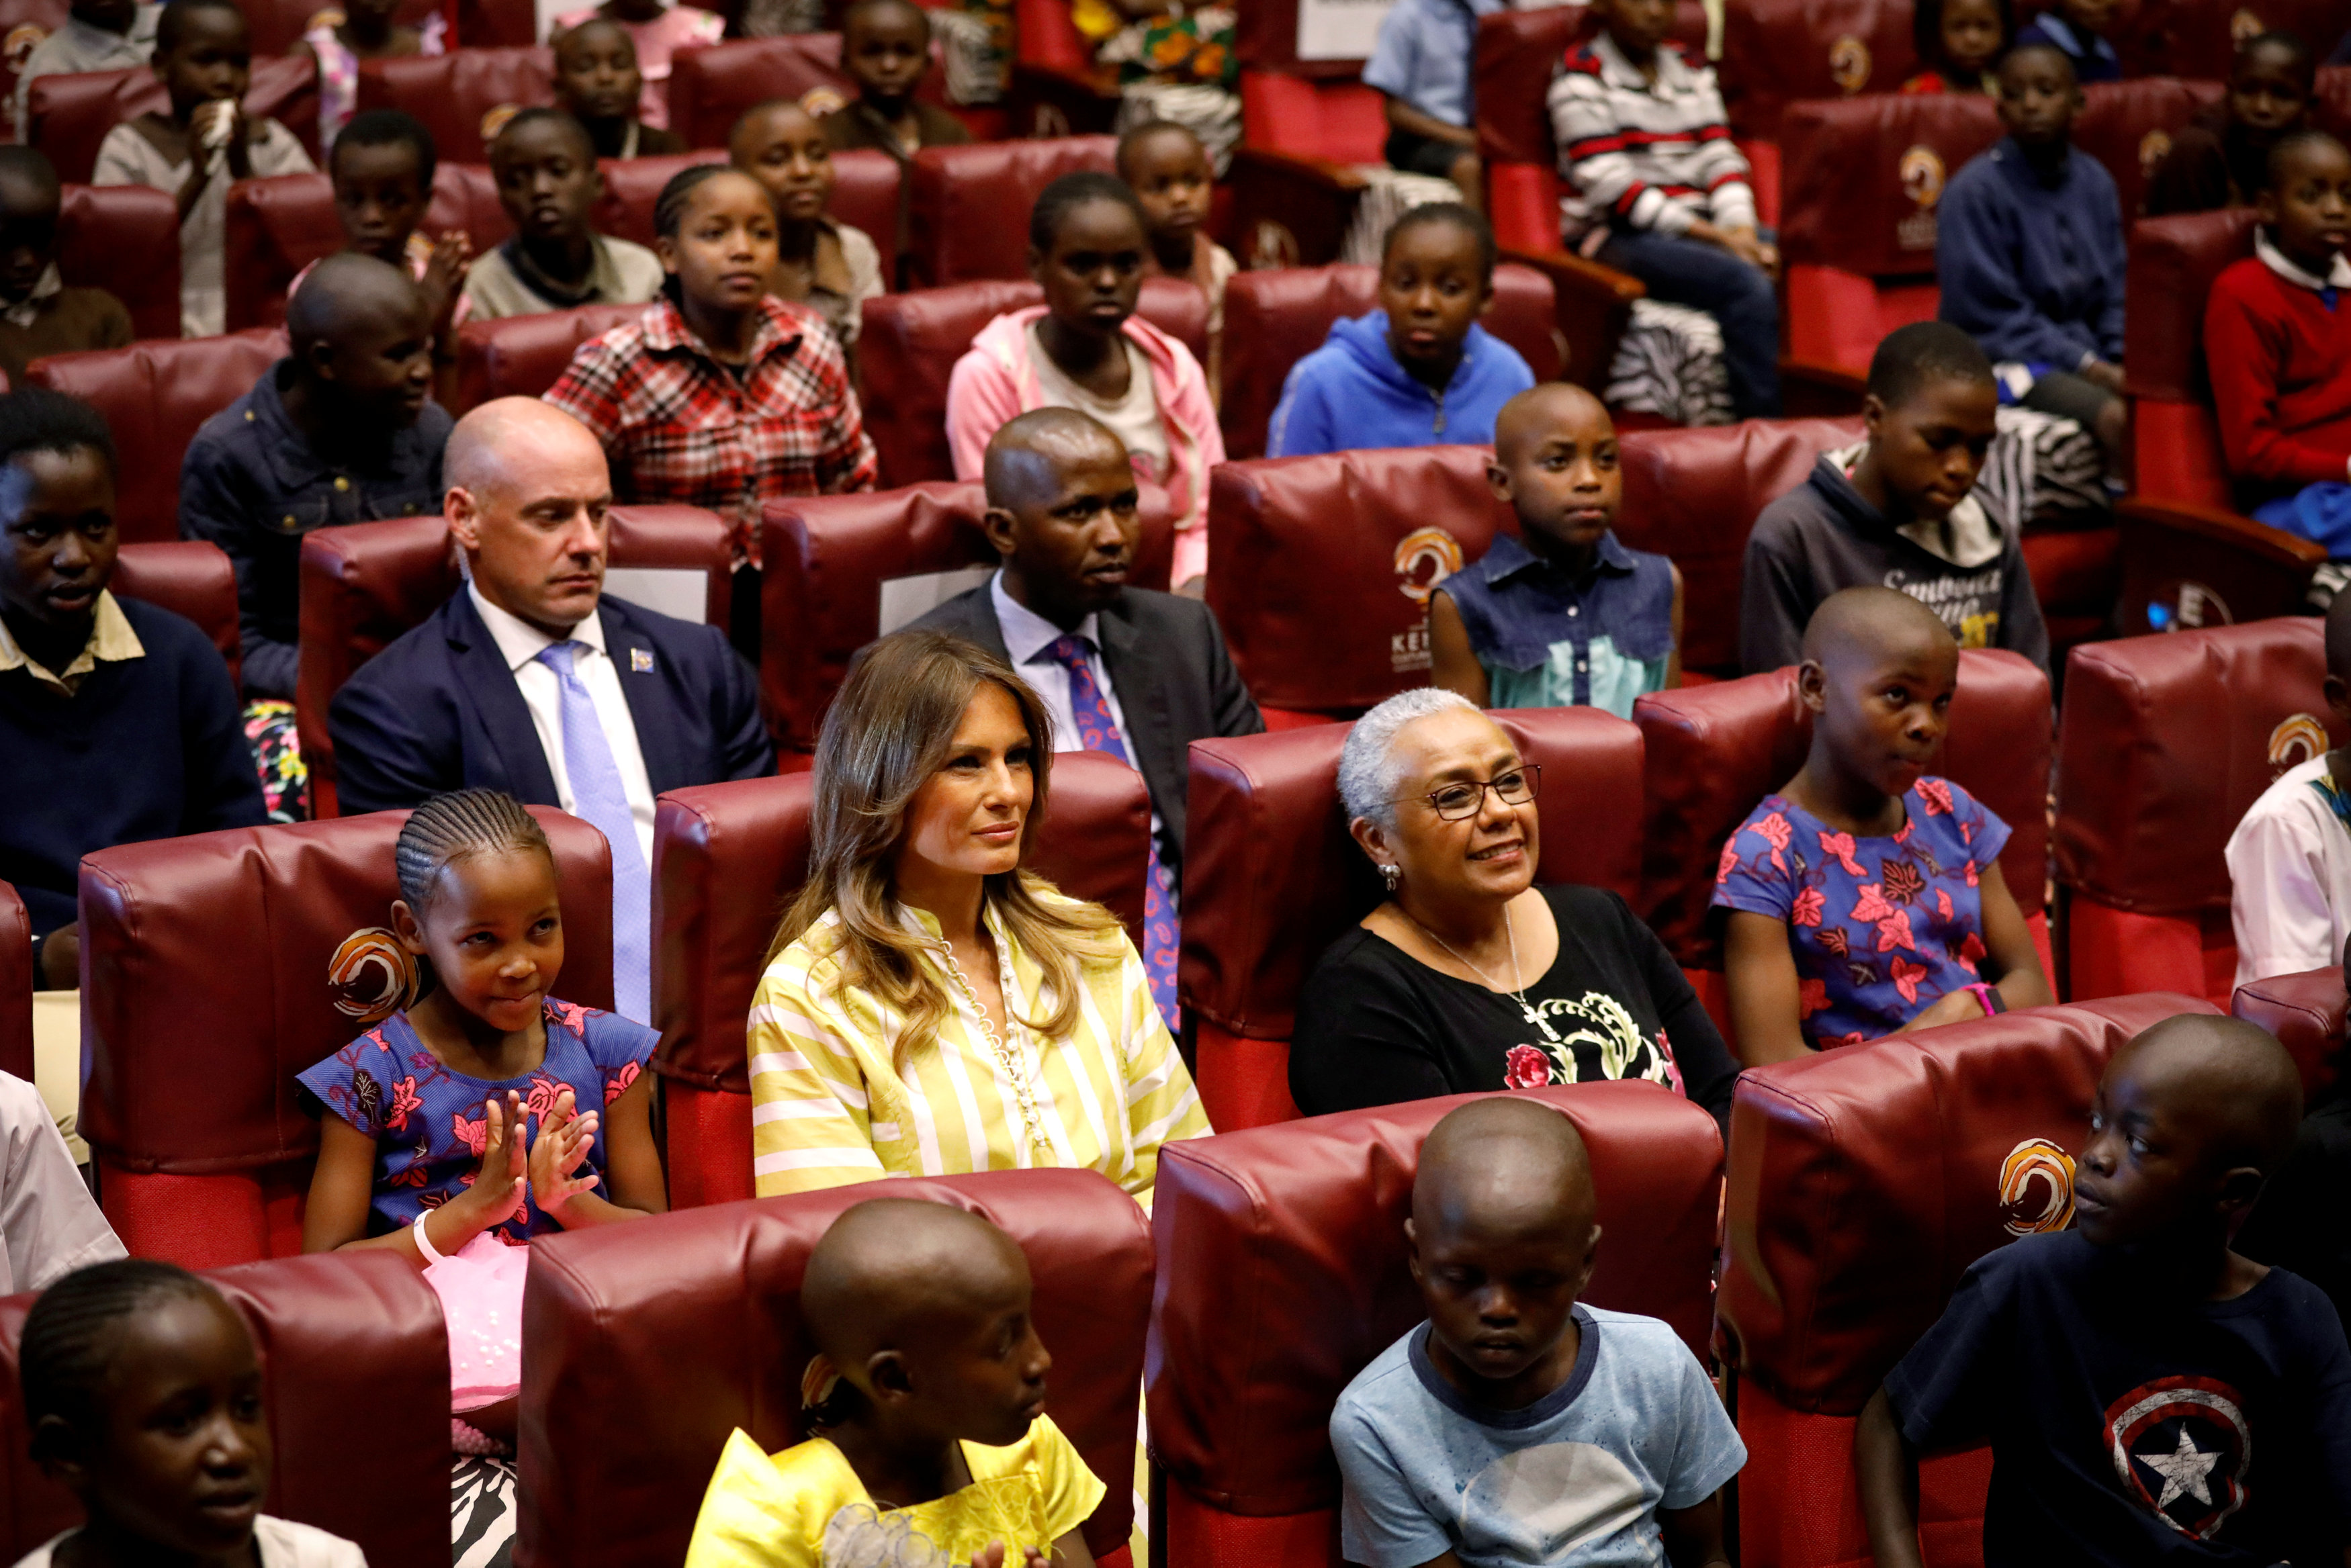 U.S. first lady Melania Trump and Kenya's first lady Margaret Kenyatta sit inside the auditorium ahead of a play at the Kenya National Theatre in Nairobi